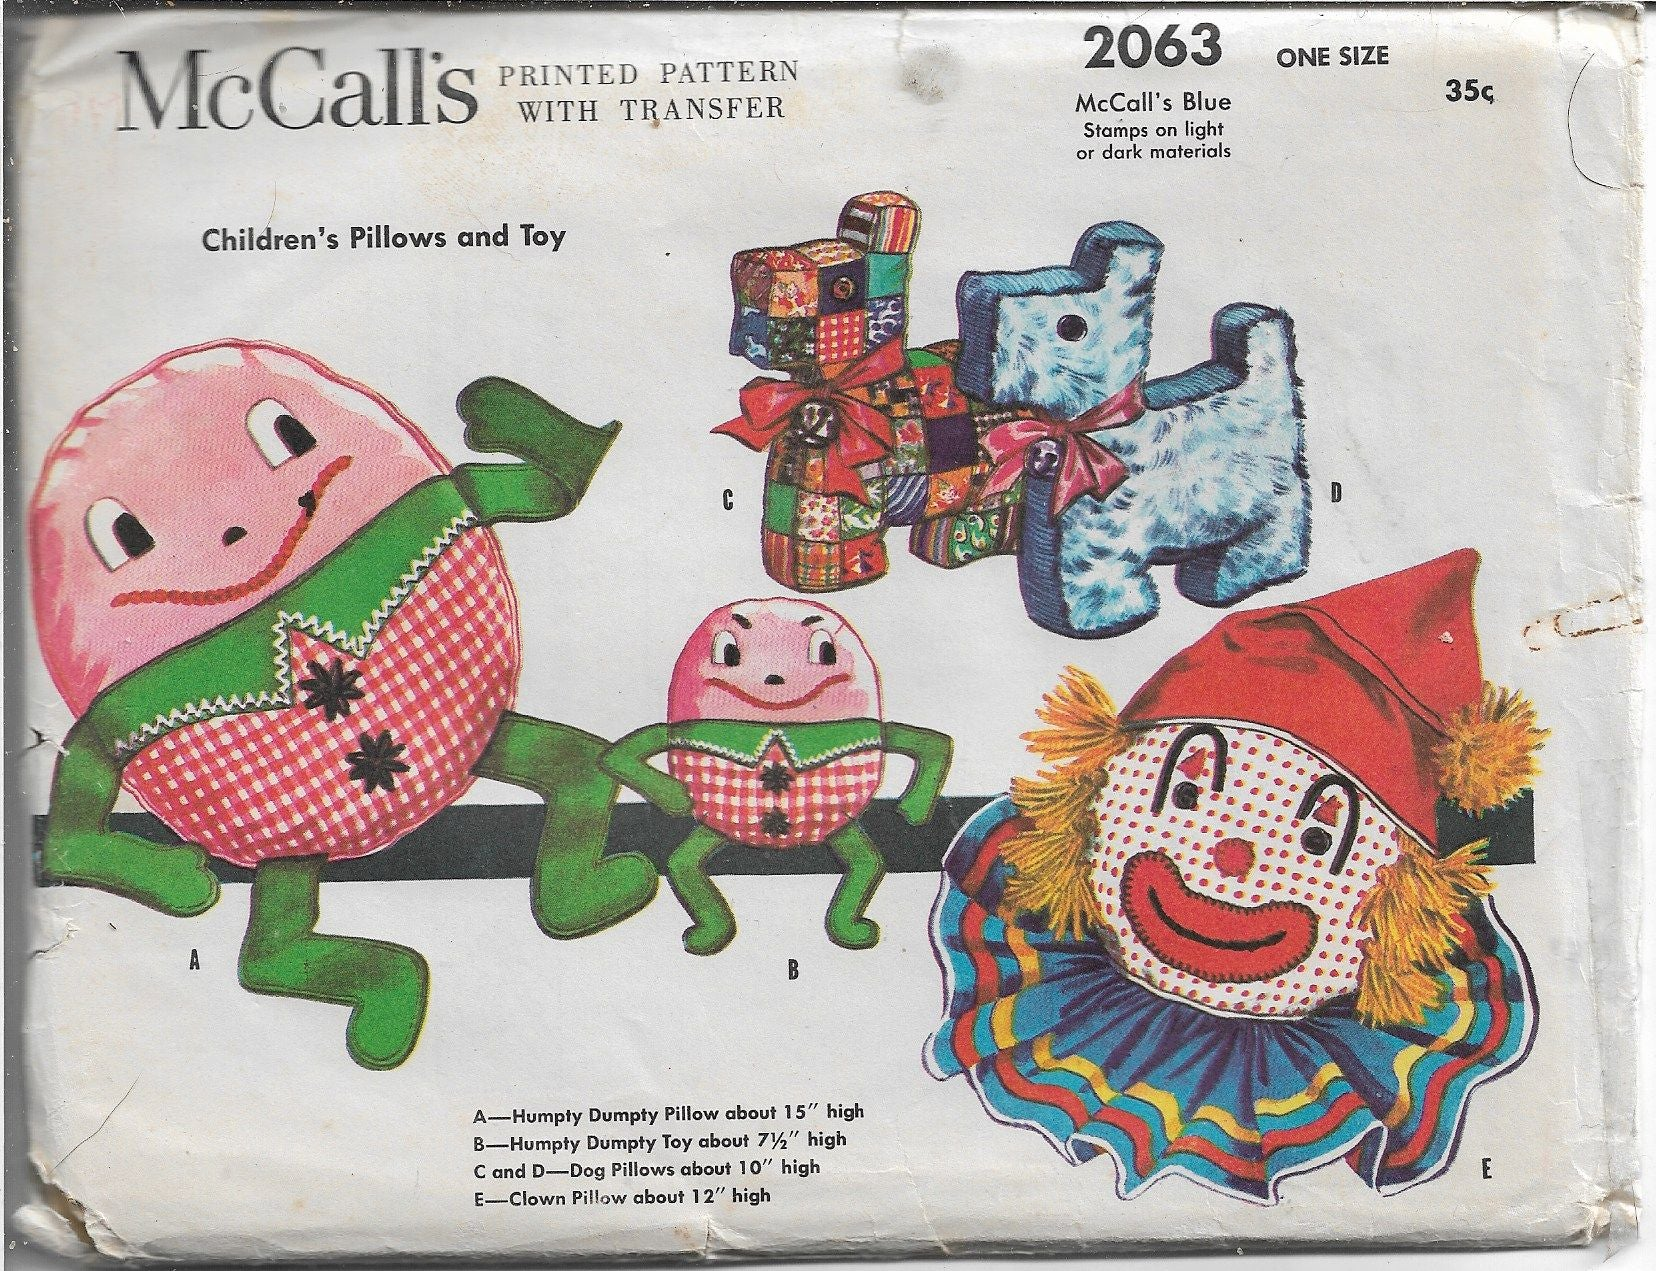 McCalls 2063 Humpty Dumpty Clown Pillow Toys Vintage Craft Sewing Pattern 1950s - VintageStitching - Vintage Sewing Patterns